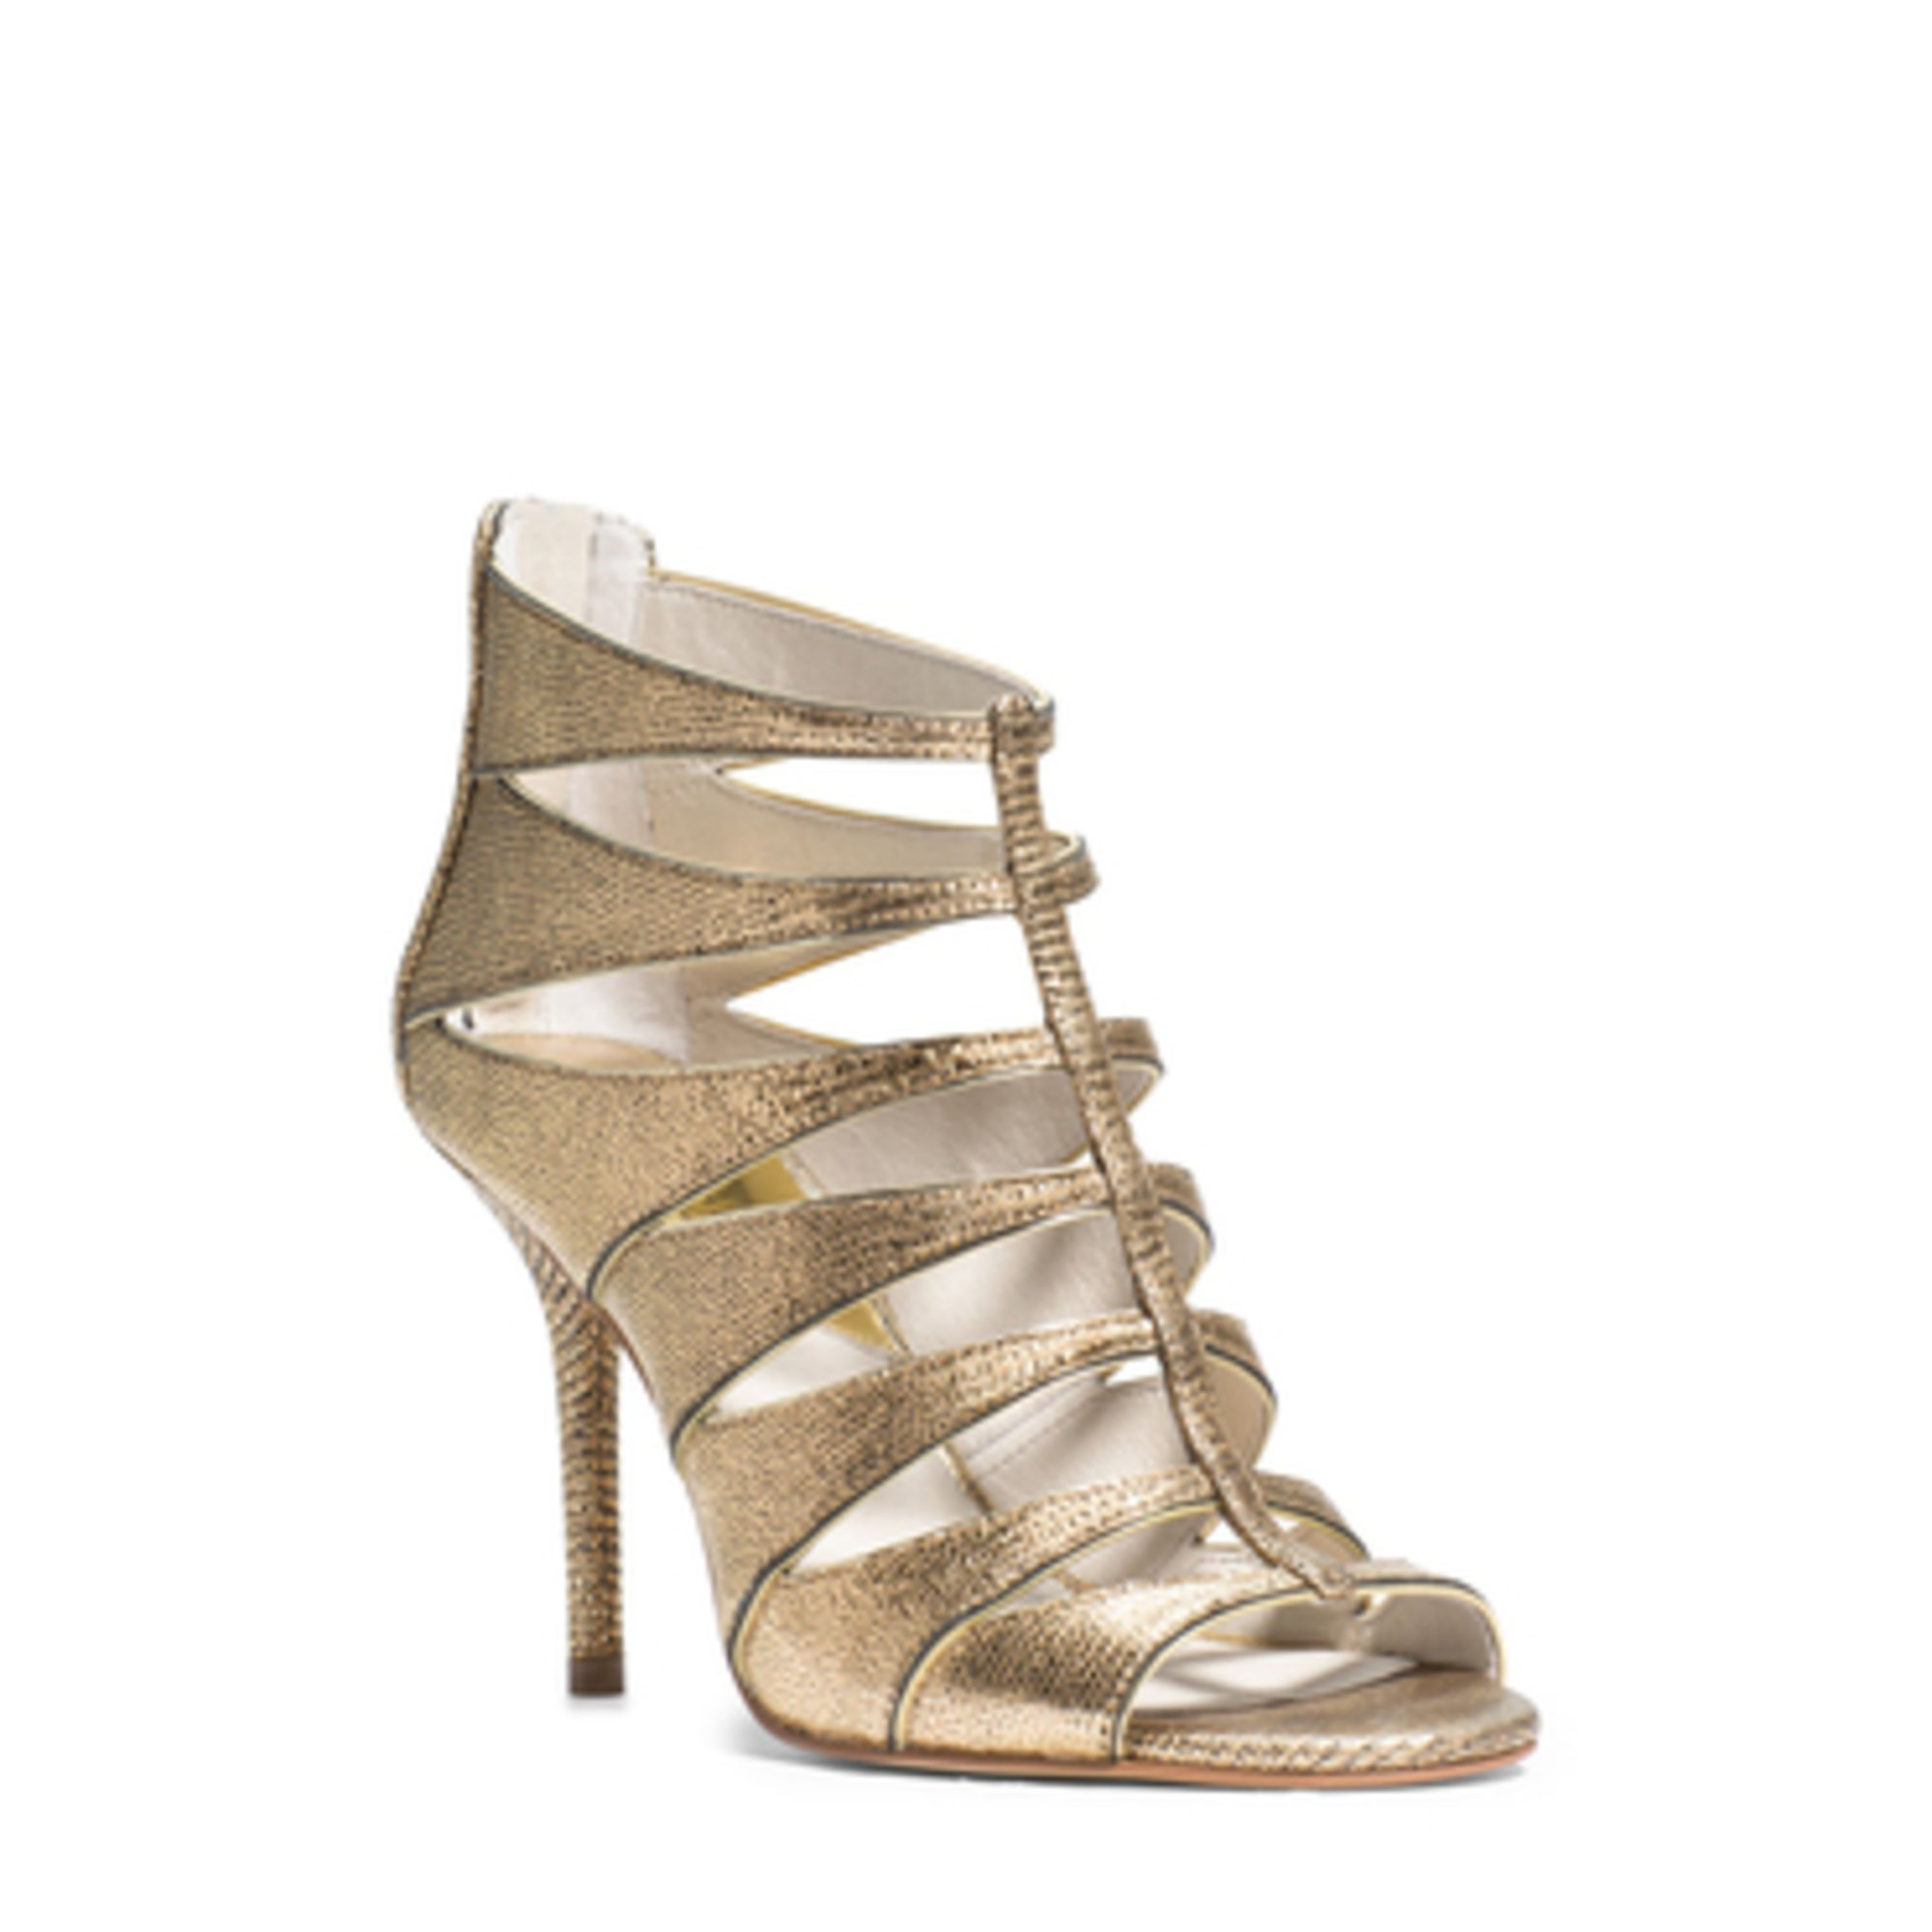 michael kors michael kors mavis women s caged sandal based on 0 ...